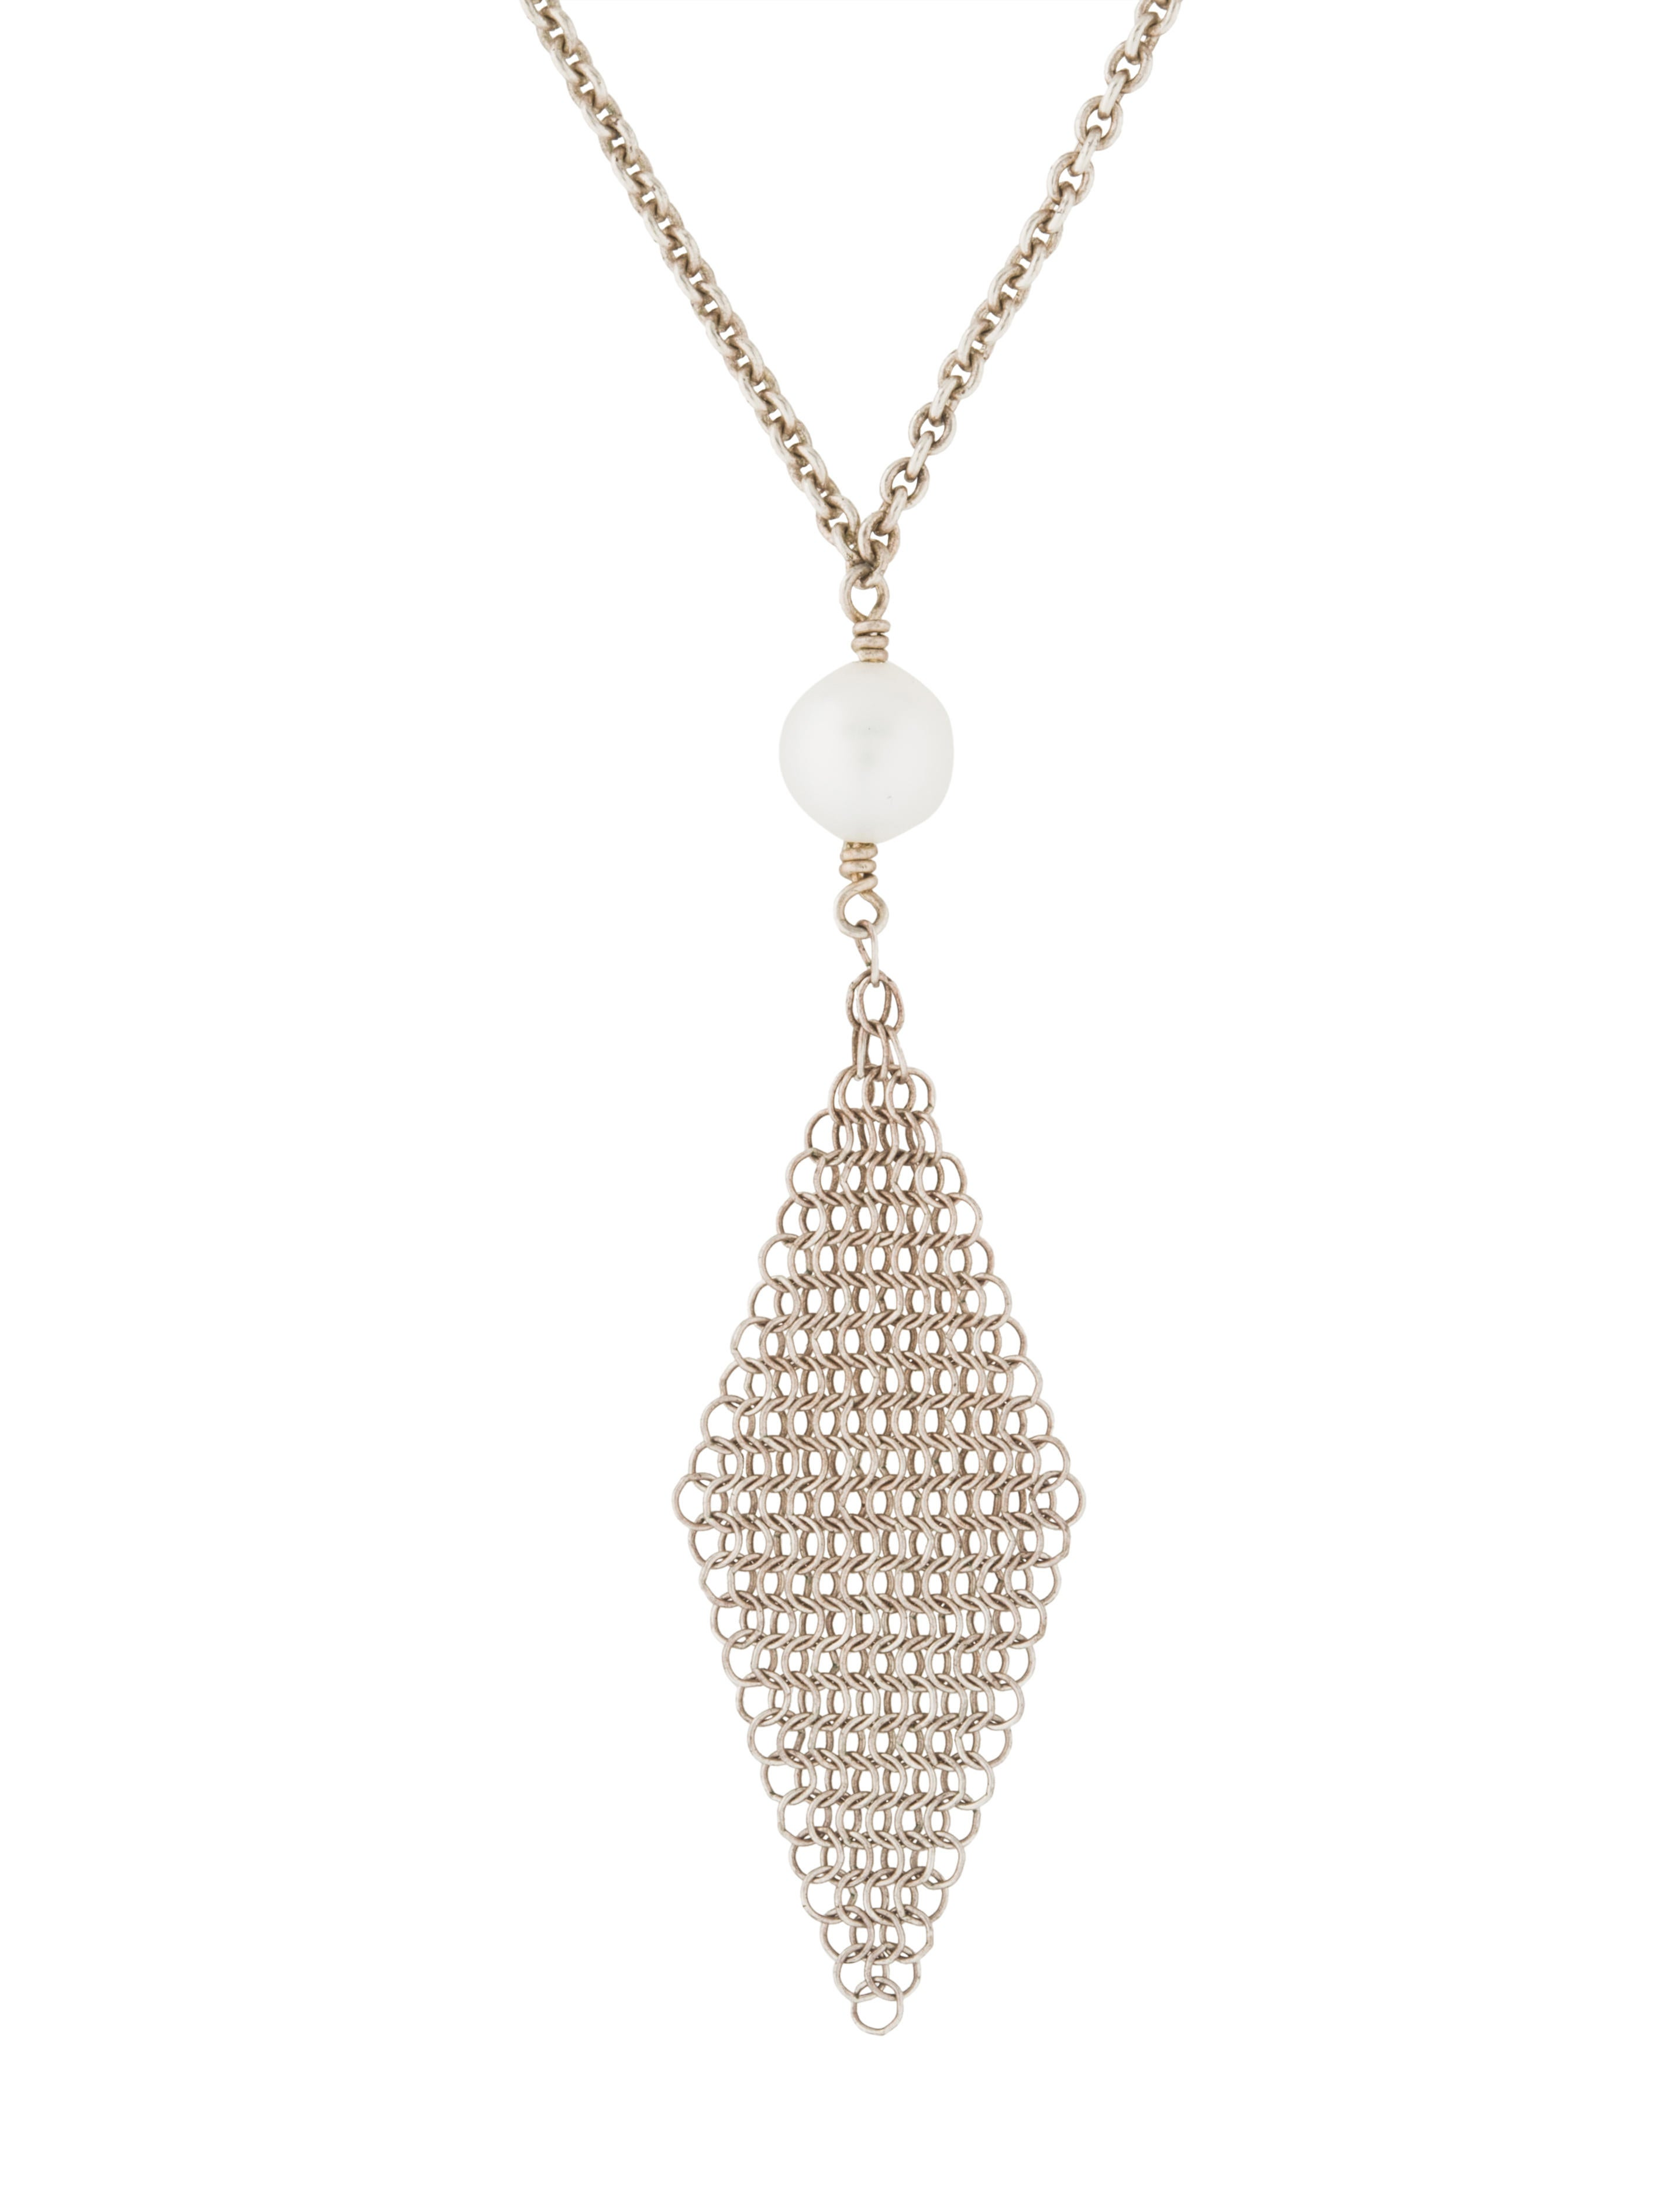 610b20425 Tiffany & Co. Pearl Mesh Tassel Pendant Necklace - Necklaces ...